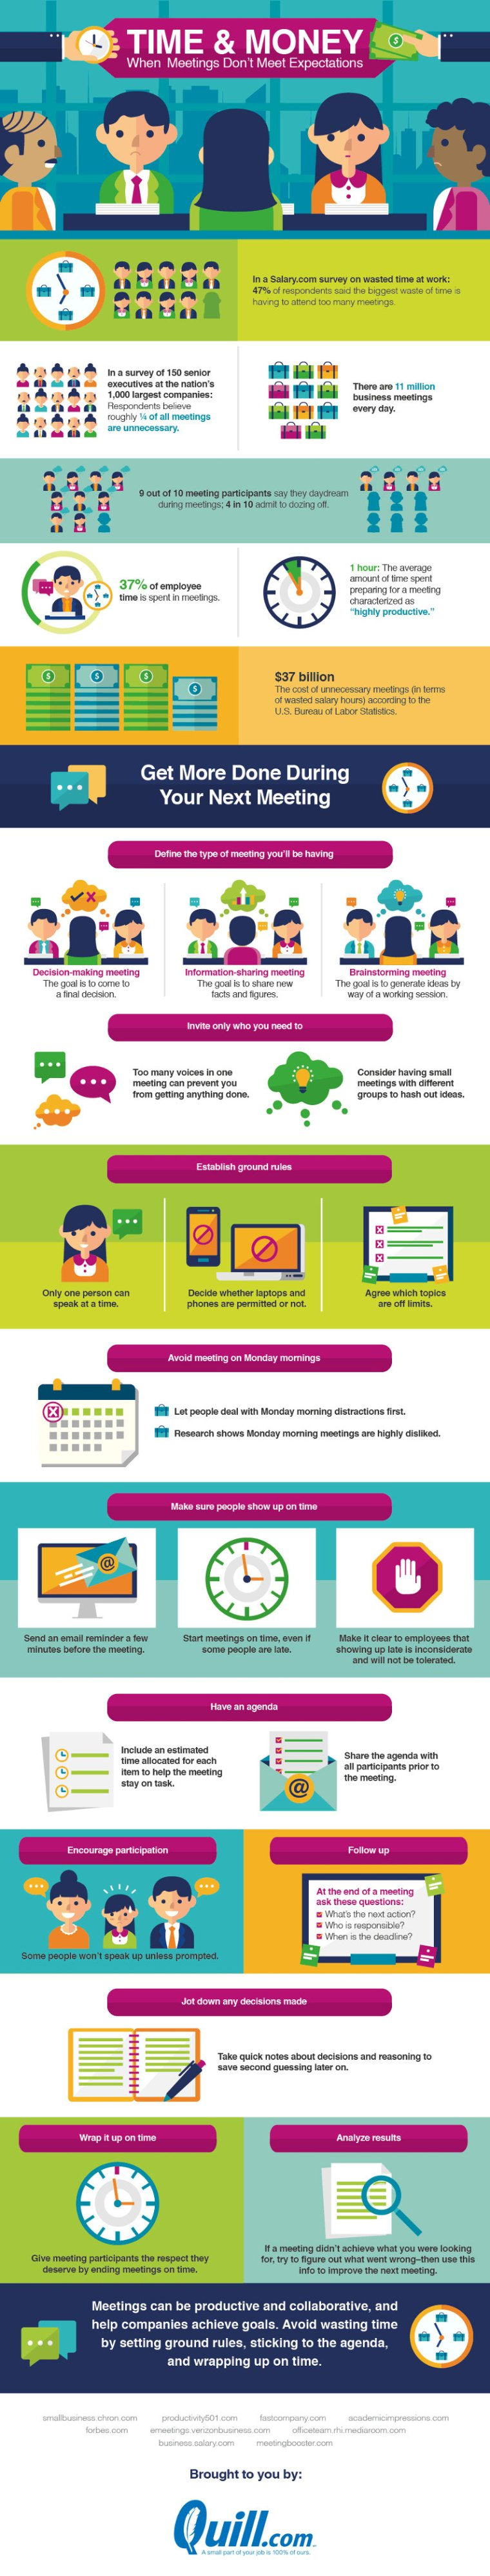 Meeting productivity infographic by Quill